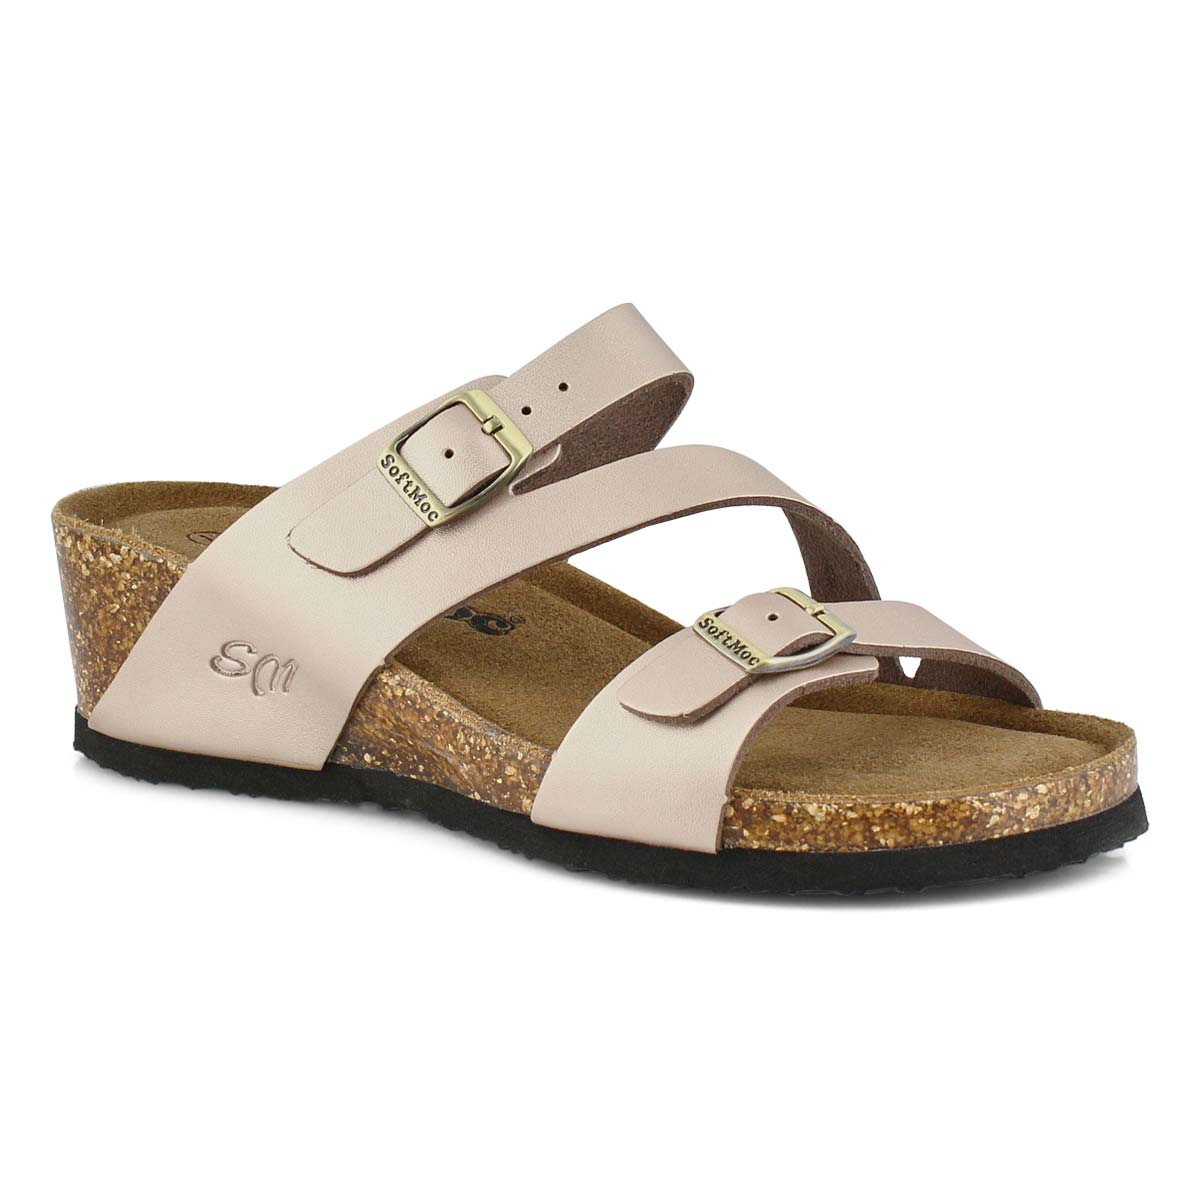 Women's ALTHEA 5 rse gld memory foam wedge sandals